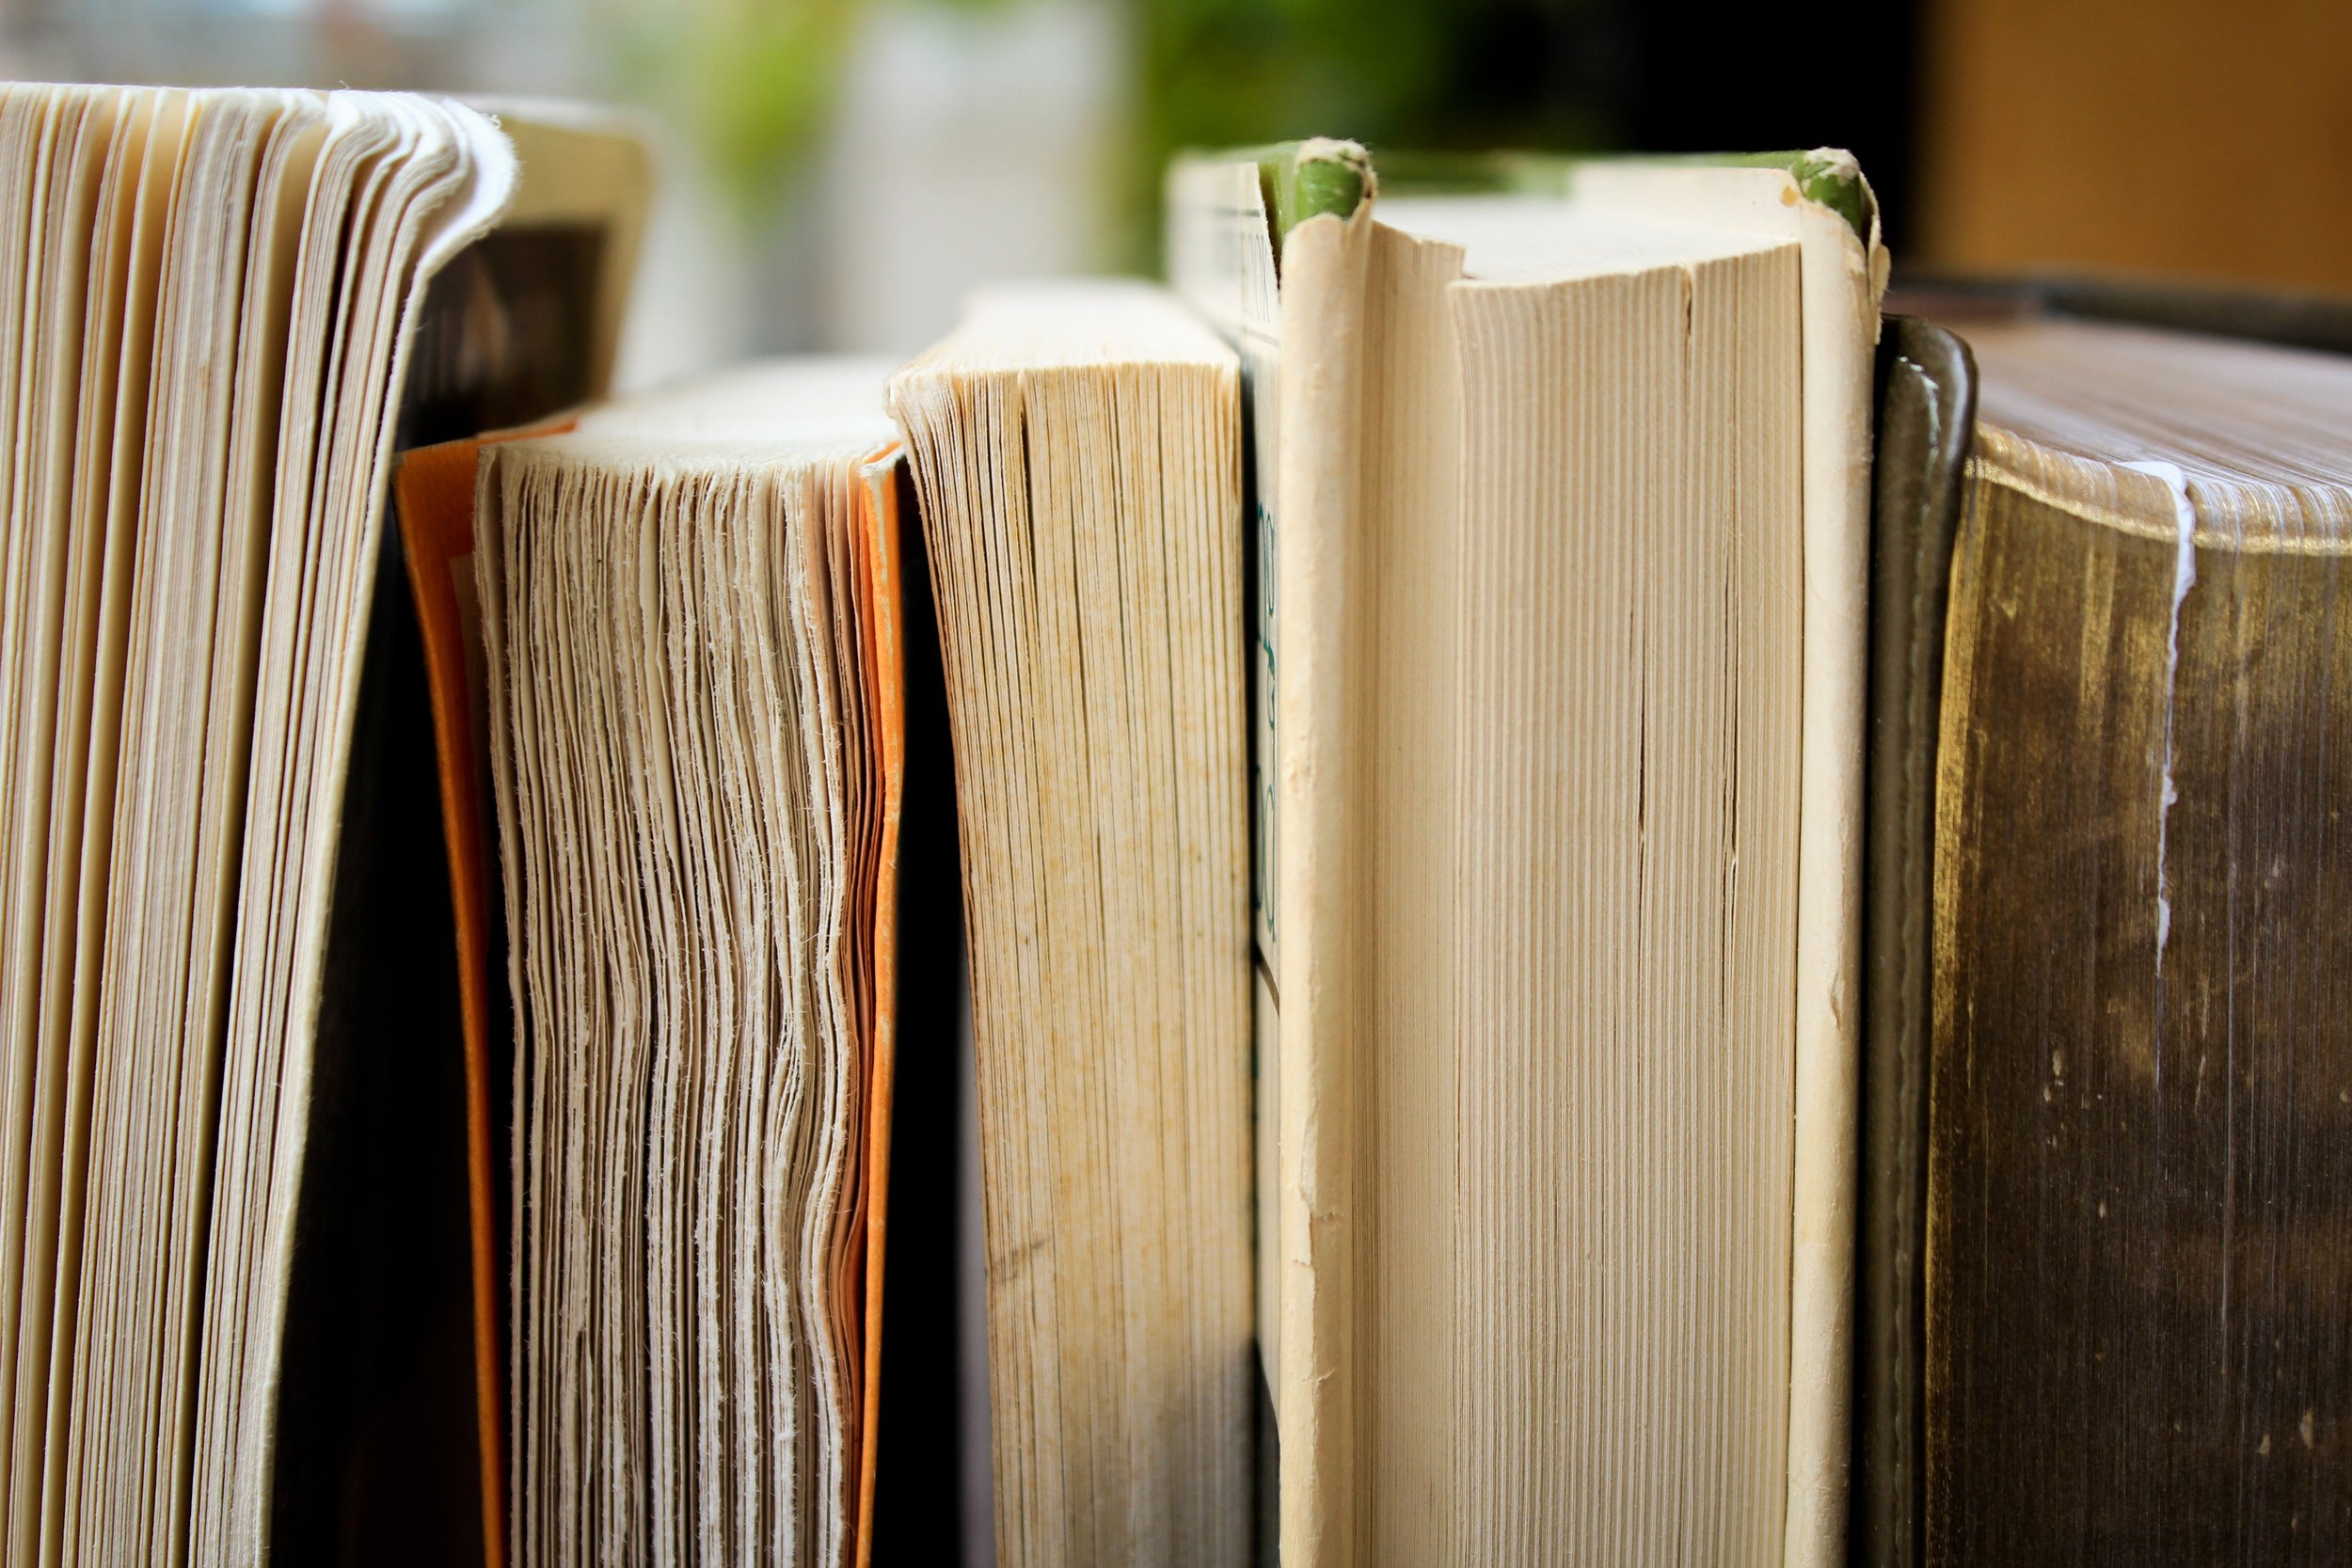 7 Books for a Better Life